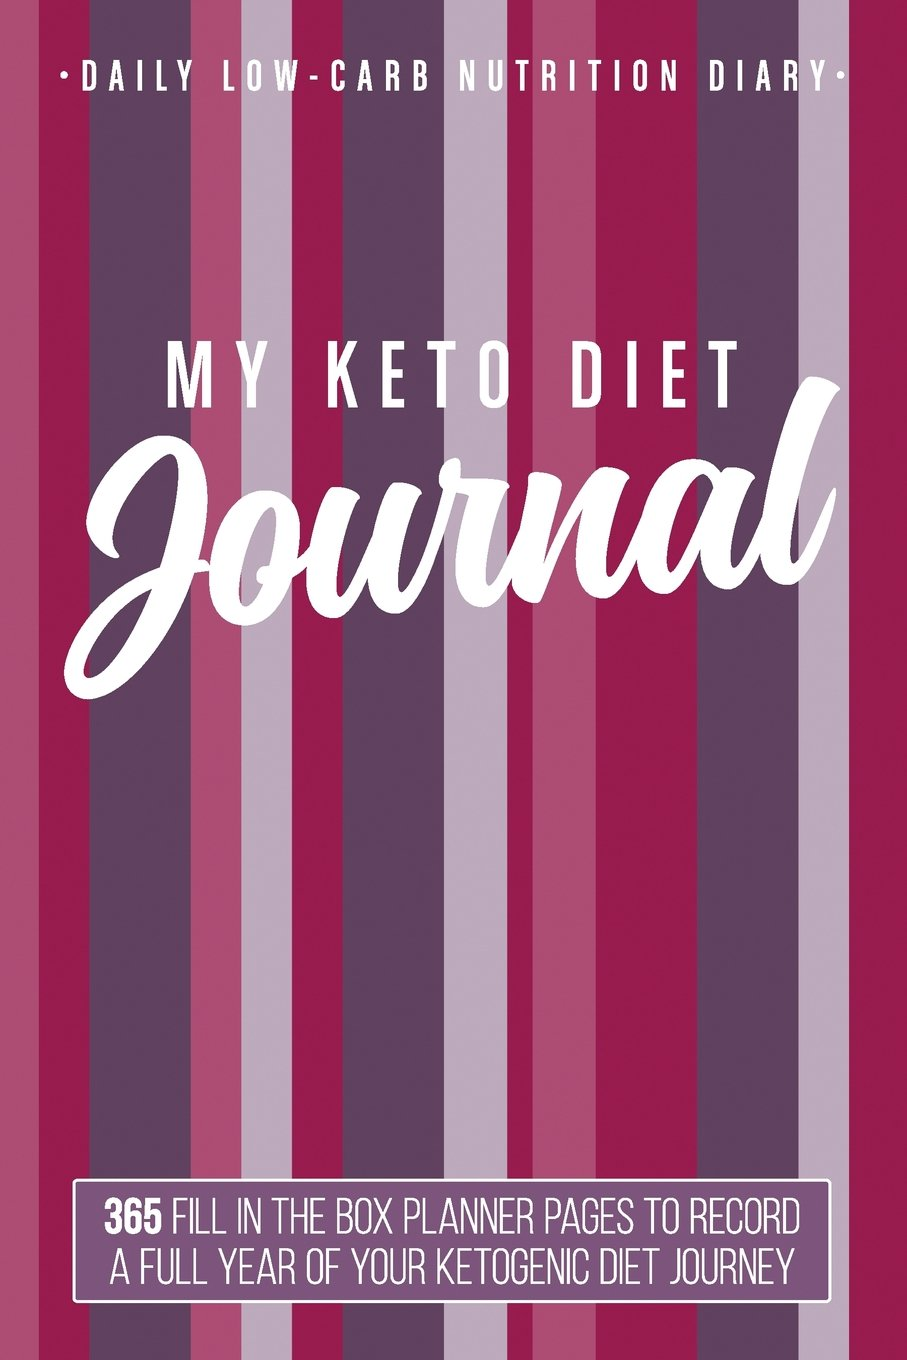 """Download My Keto Diet Journal: Daily Low-Carb Nutrition Diary 6"""" x 9"""": 365 Fill In The Box Planner Pages To Record A Full Year Of Your Ketogenic Diet Journey (Ketonius Books) ebook"""